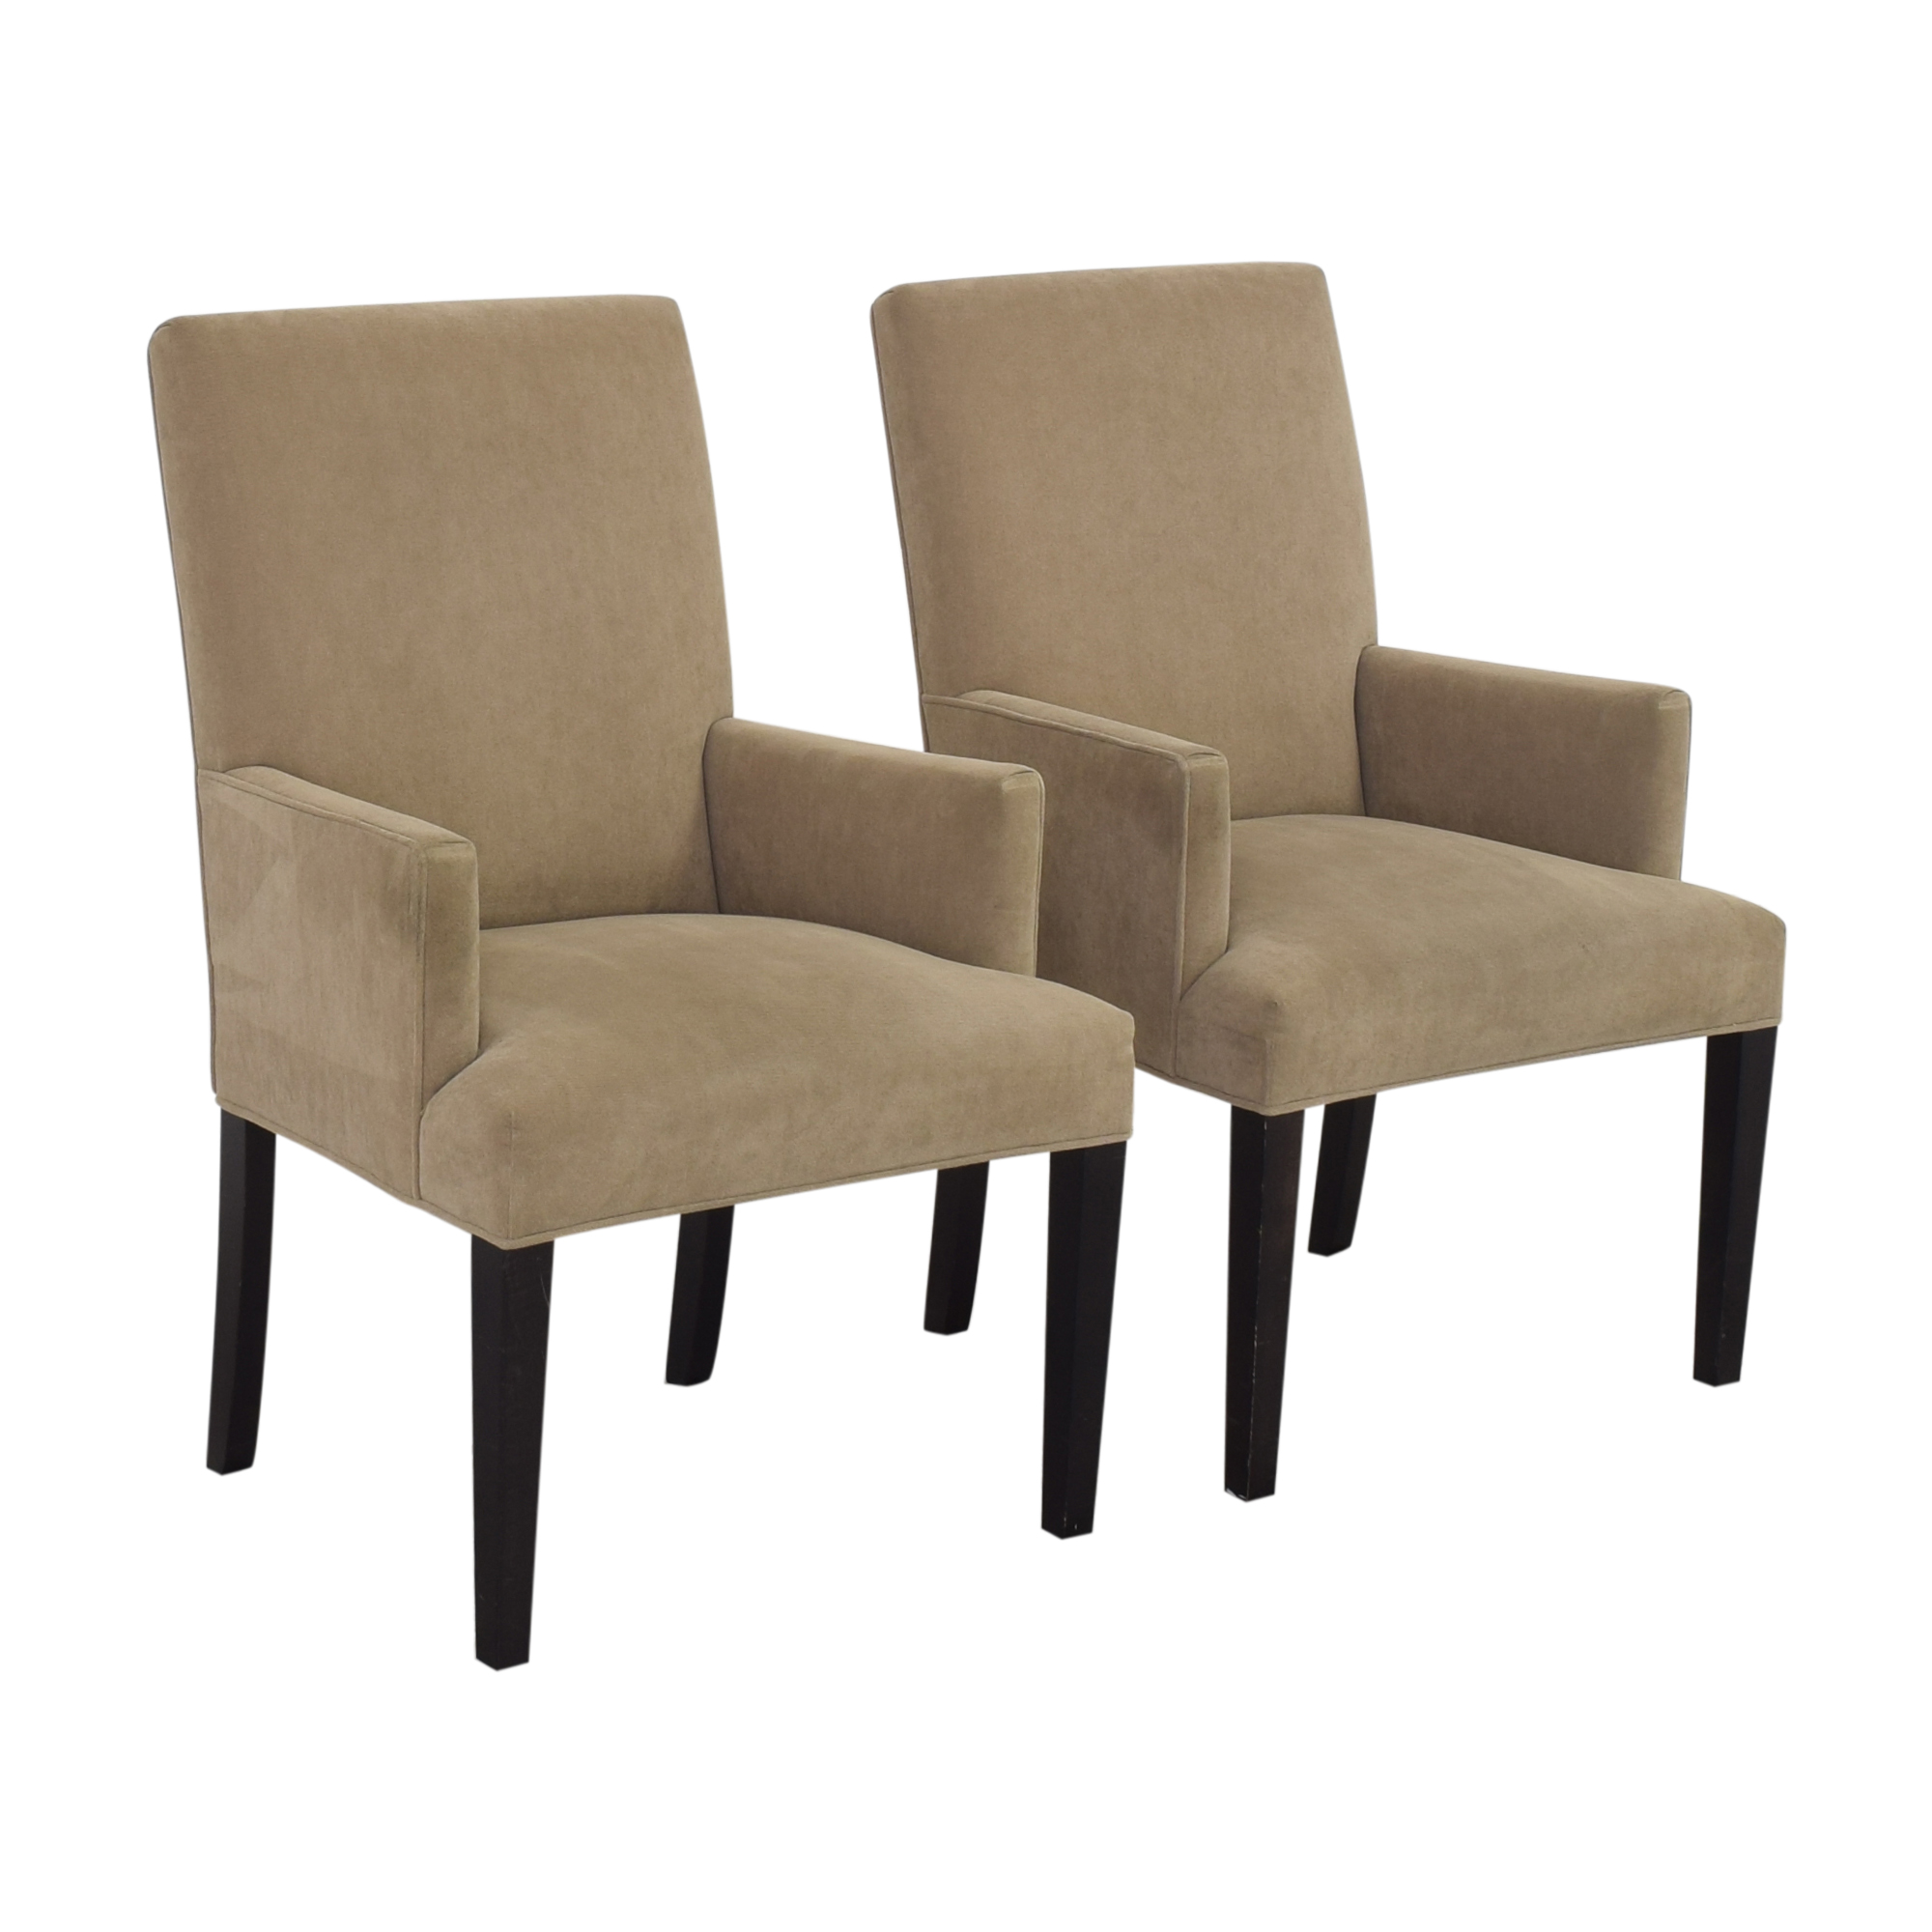 Crate & Barrel Upholstered Dining Chairs Crate & Barrel